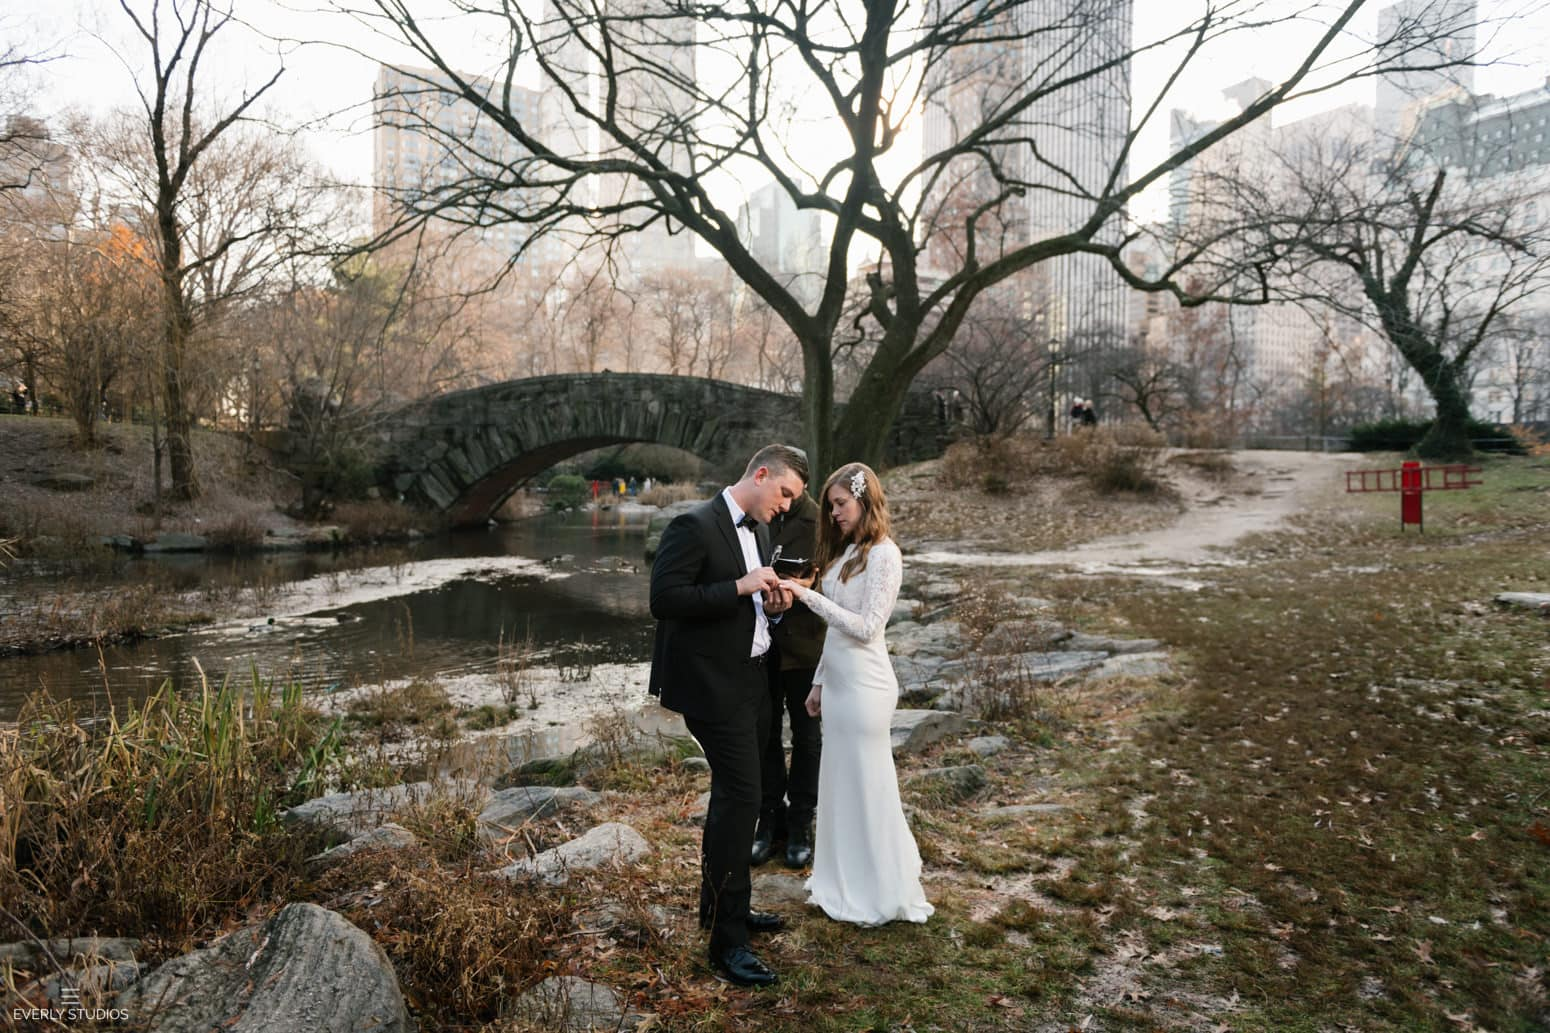 Gapstow Bridge elopement in Central Park NYC. Winter Central Park wedding at Gapstow Bridge in New York. Photo by Central Park wedding photographer Everly Studios, www.everlystudios.com